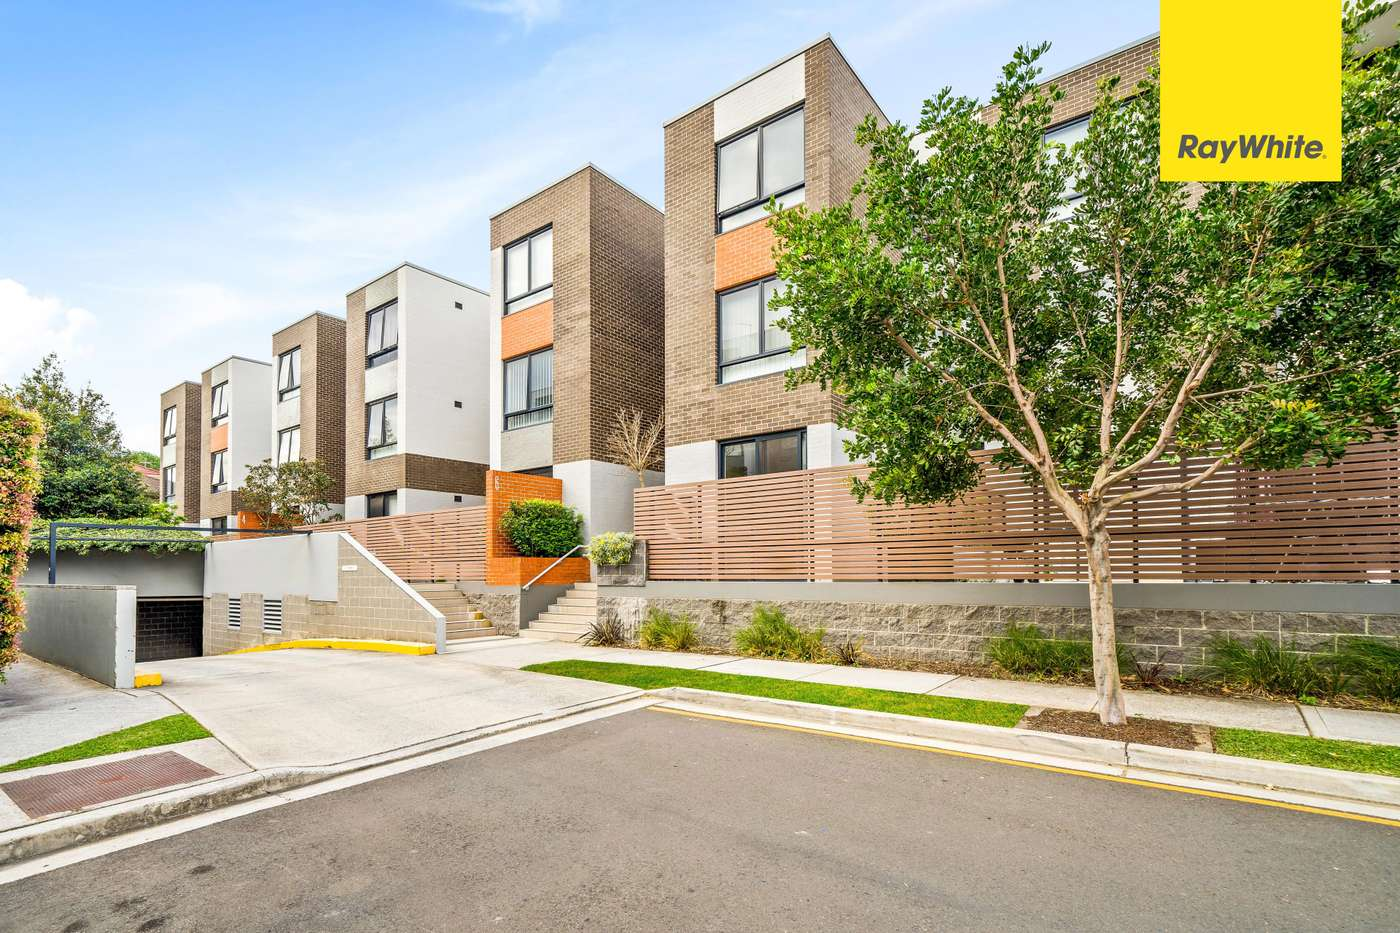 Main view of Homely apartment listing, 1/4 Victa Street, Campsie, NSW 2194